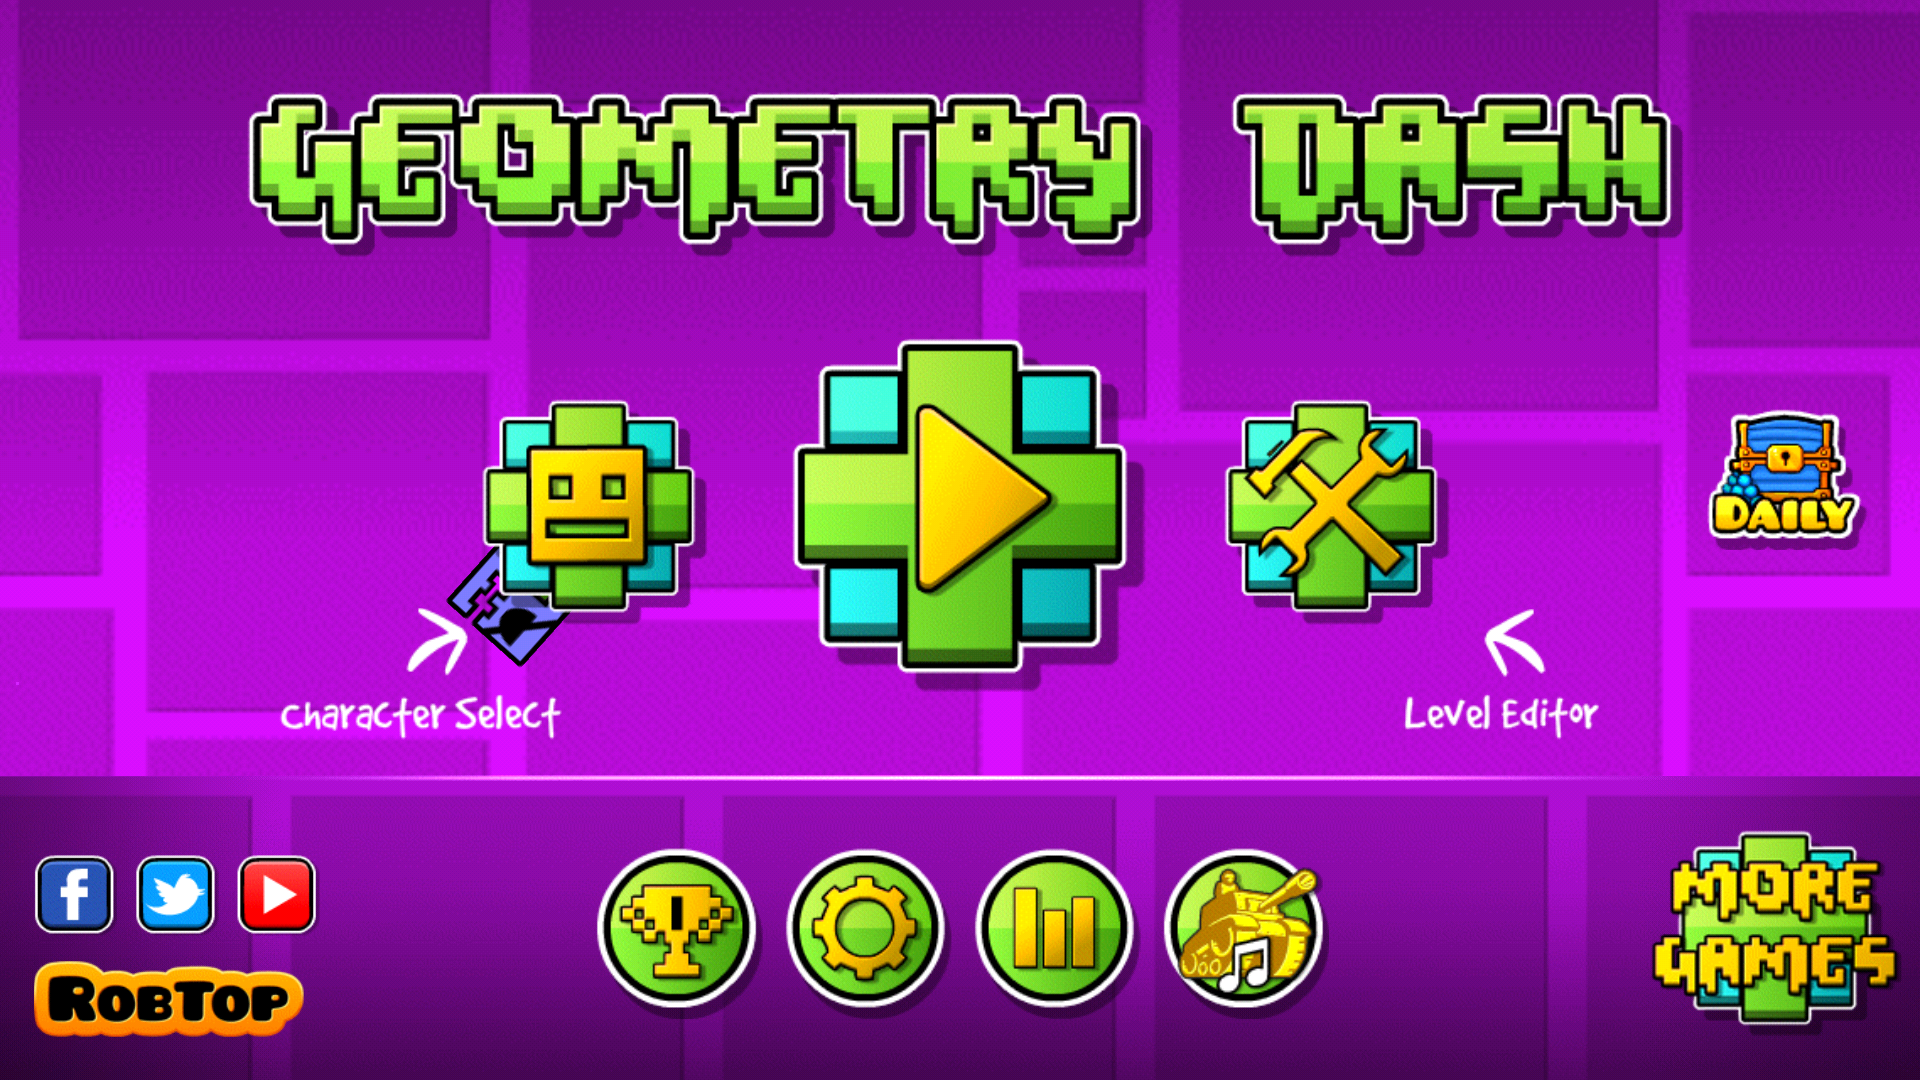 Free Download Geometry Dash Full Version Apk 2.1 - Download Geometry Dash Mod APK for Free